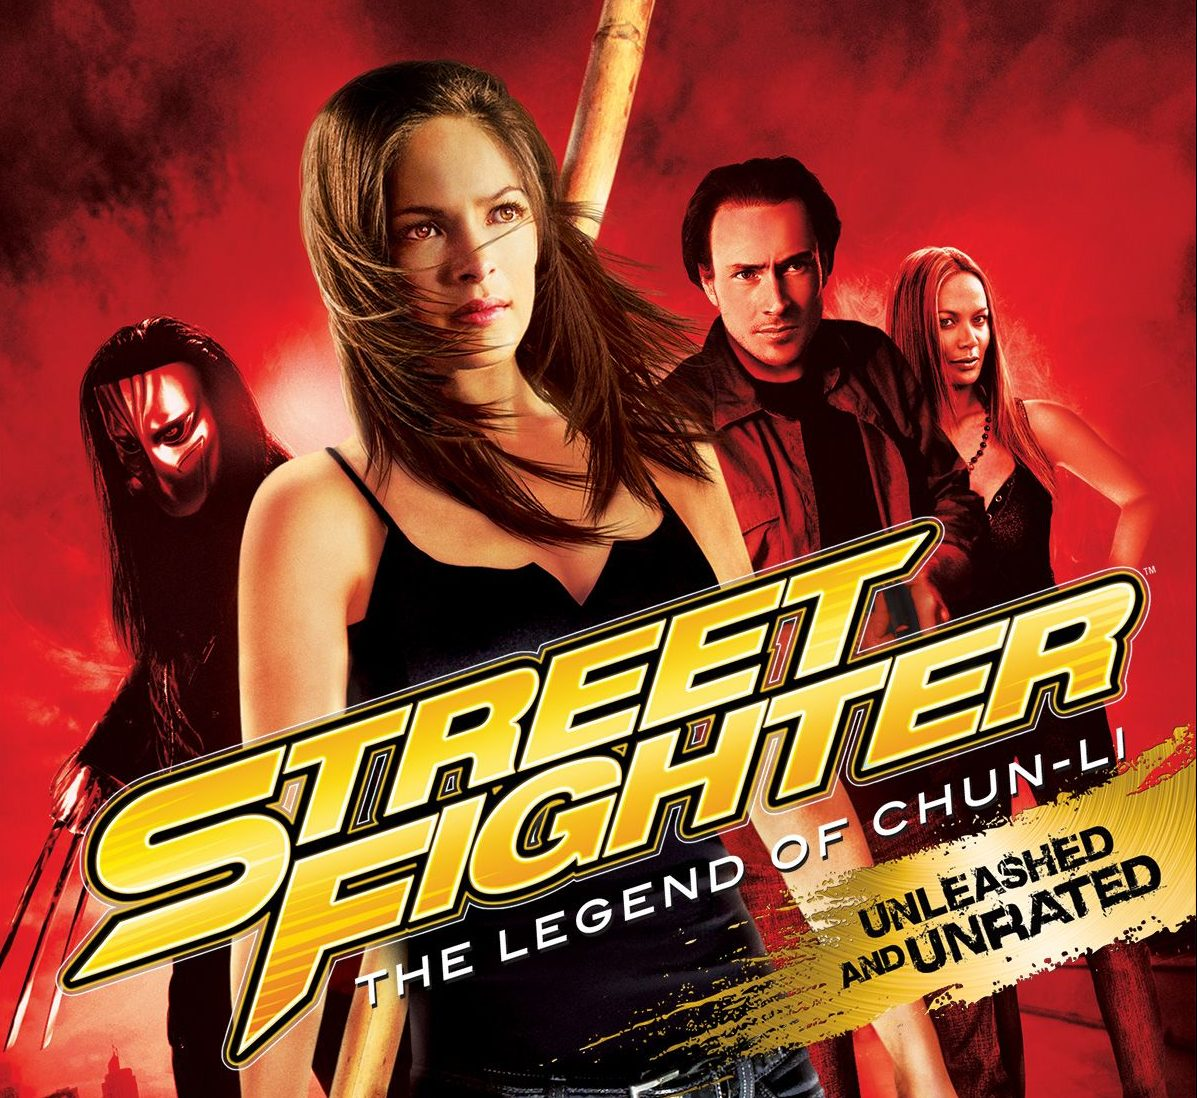 9fb292fc a411 43c9 9dea ccb815ab2a90 e1615294568885 20 Things You Might Not Have Realised About The 1994 Street Fighter Movie